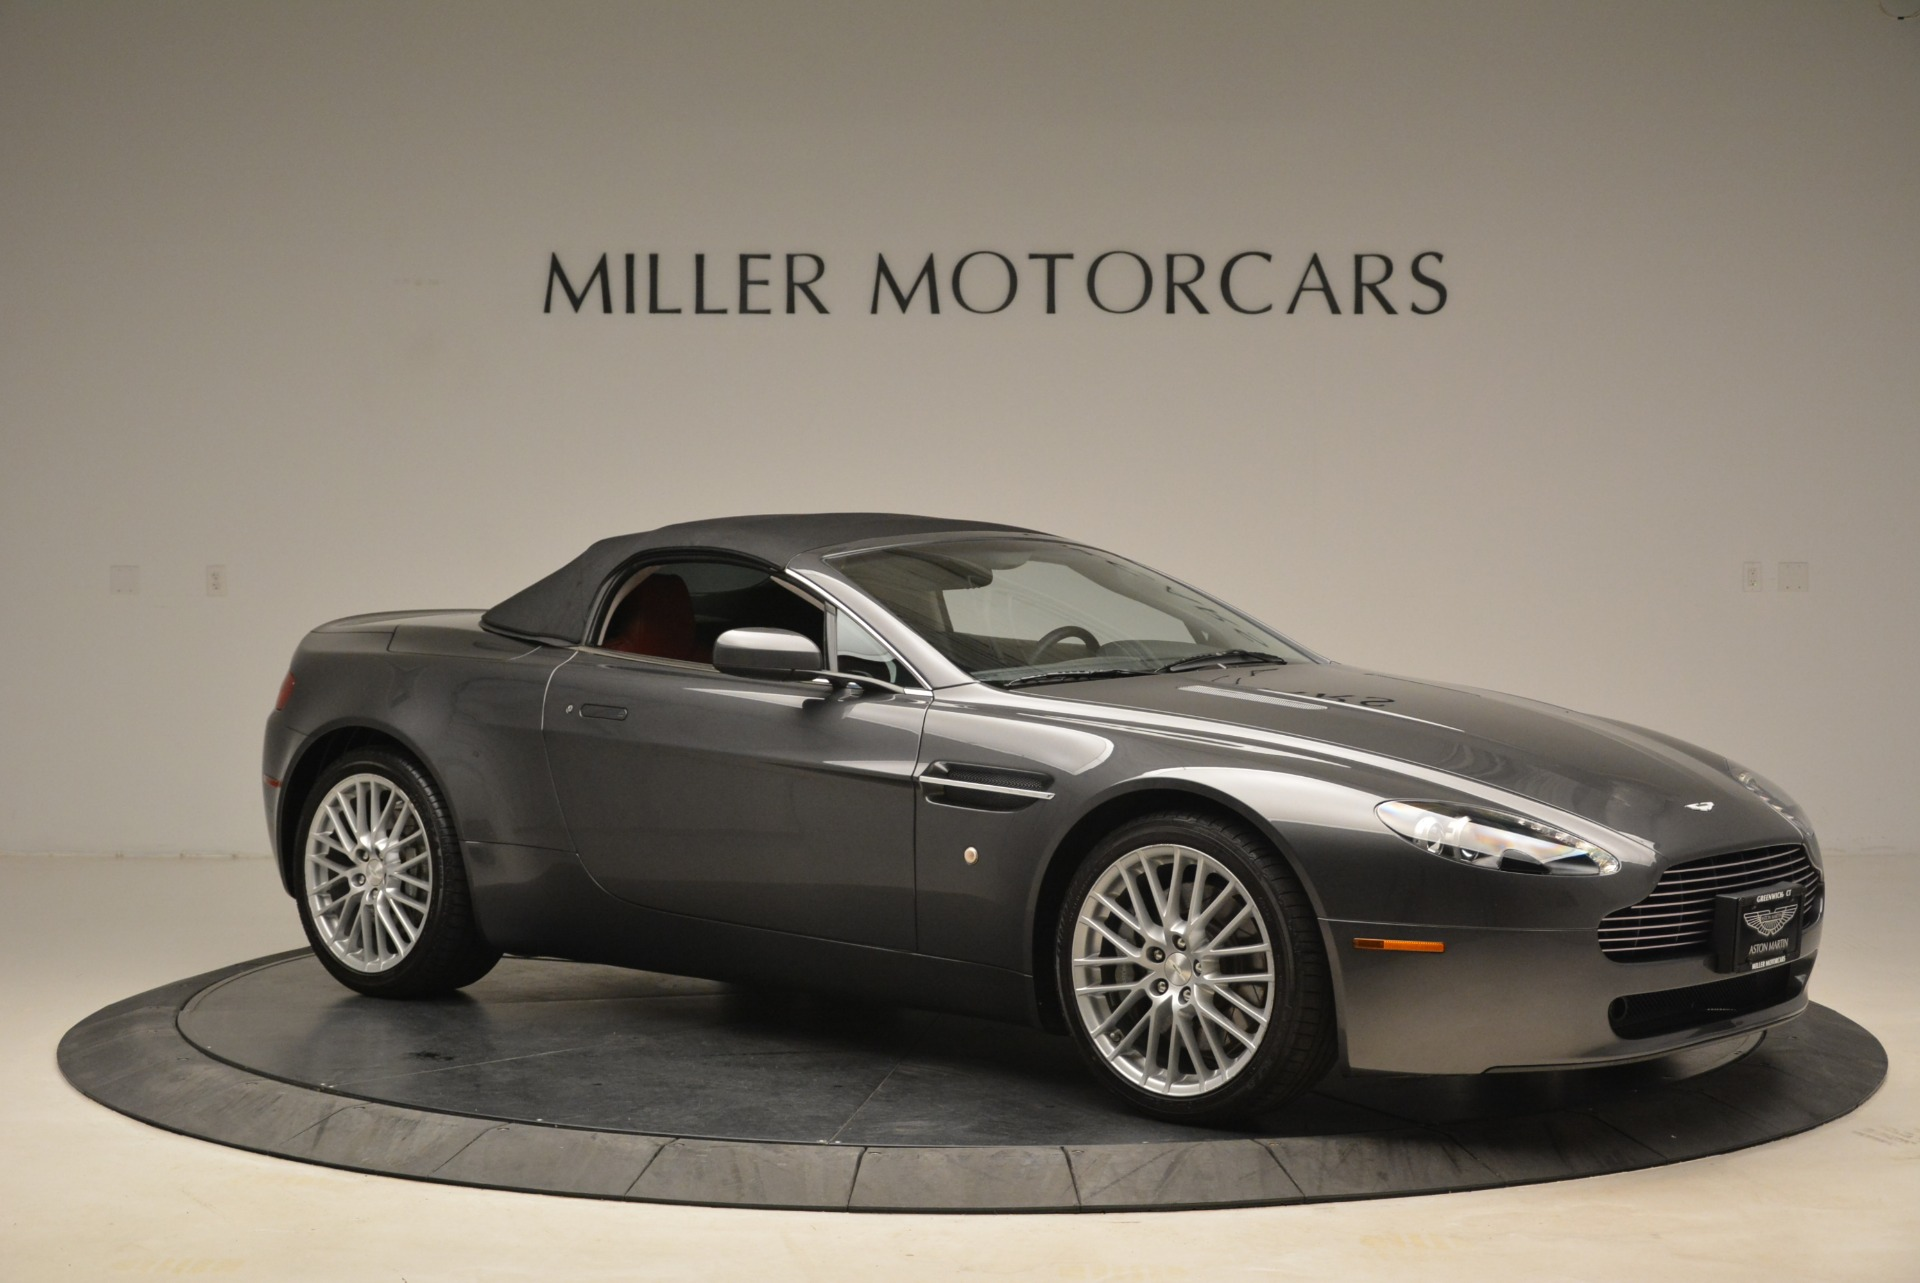 Used 2009 Aston Martin V8 Vantage Roadster For Sale In Westport, CT 2123_p22